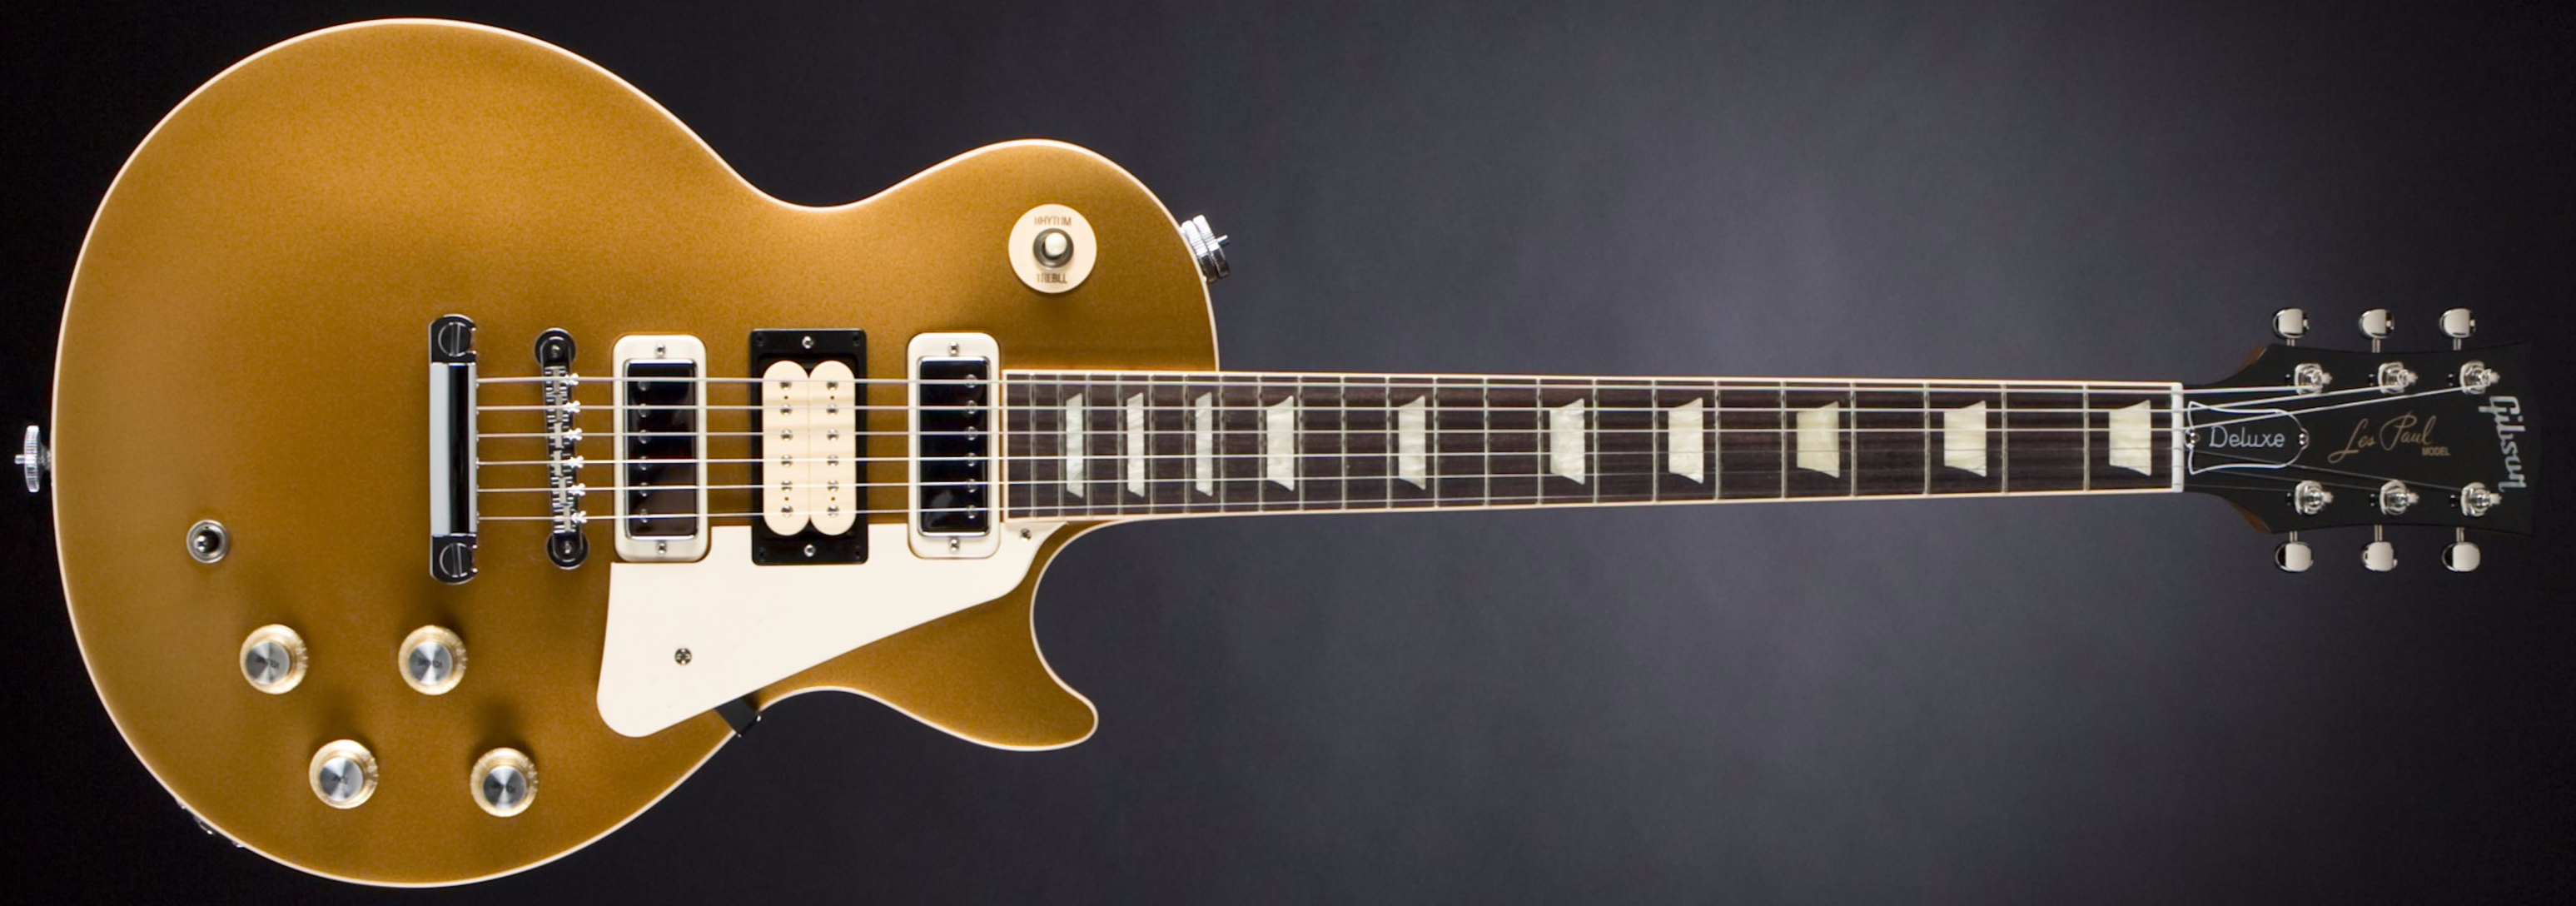 GIBSON Les Paul Pete Townshend Deluxe Gold Top '76